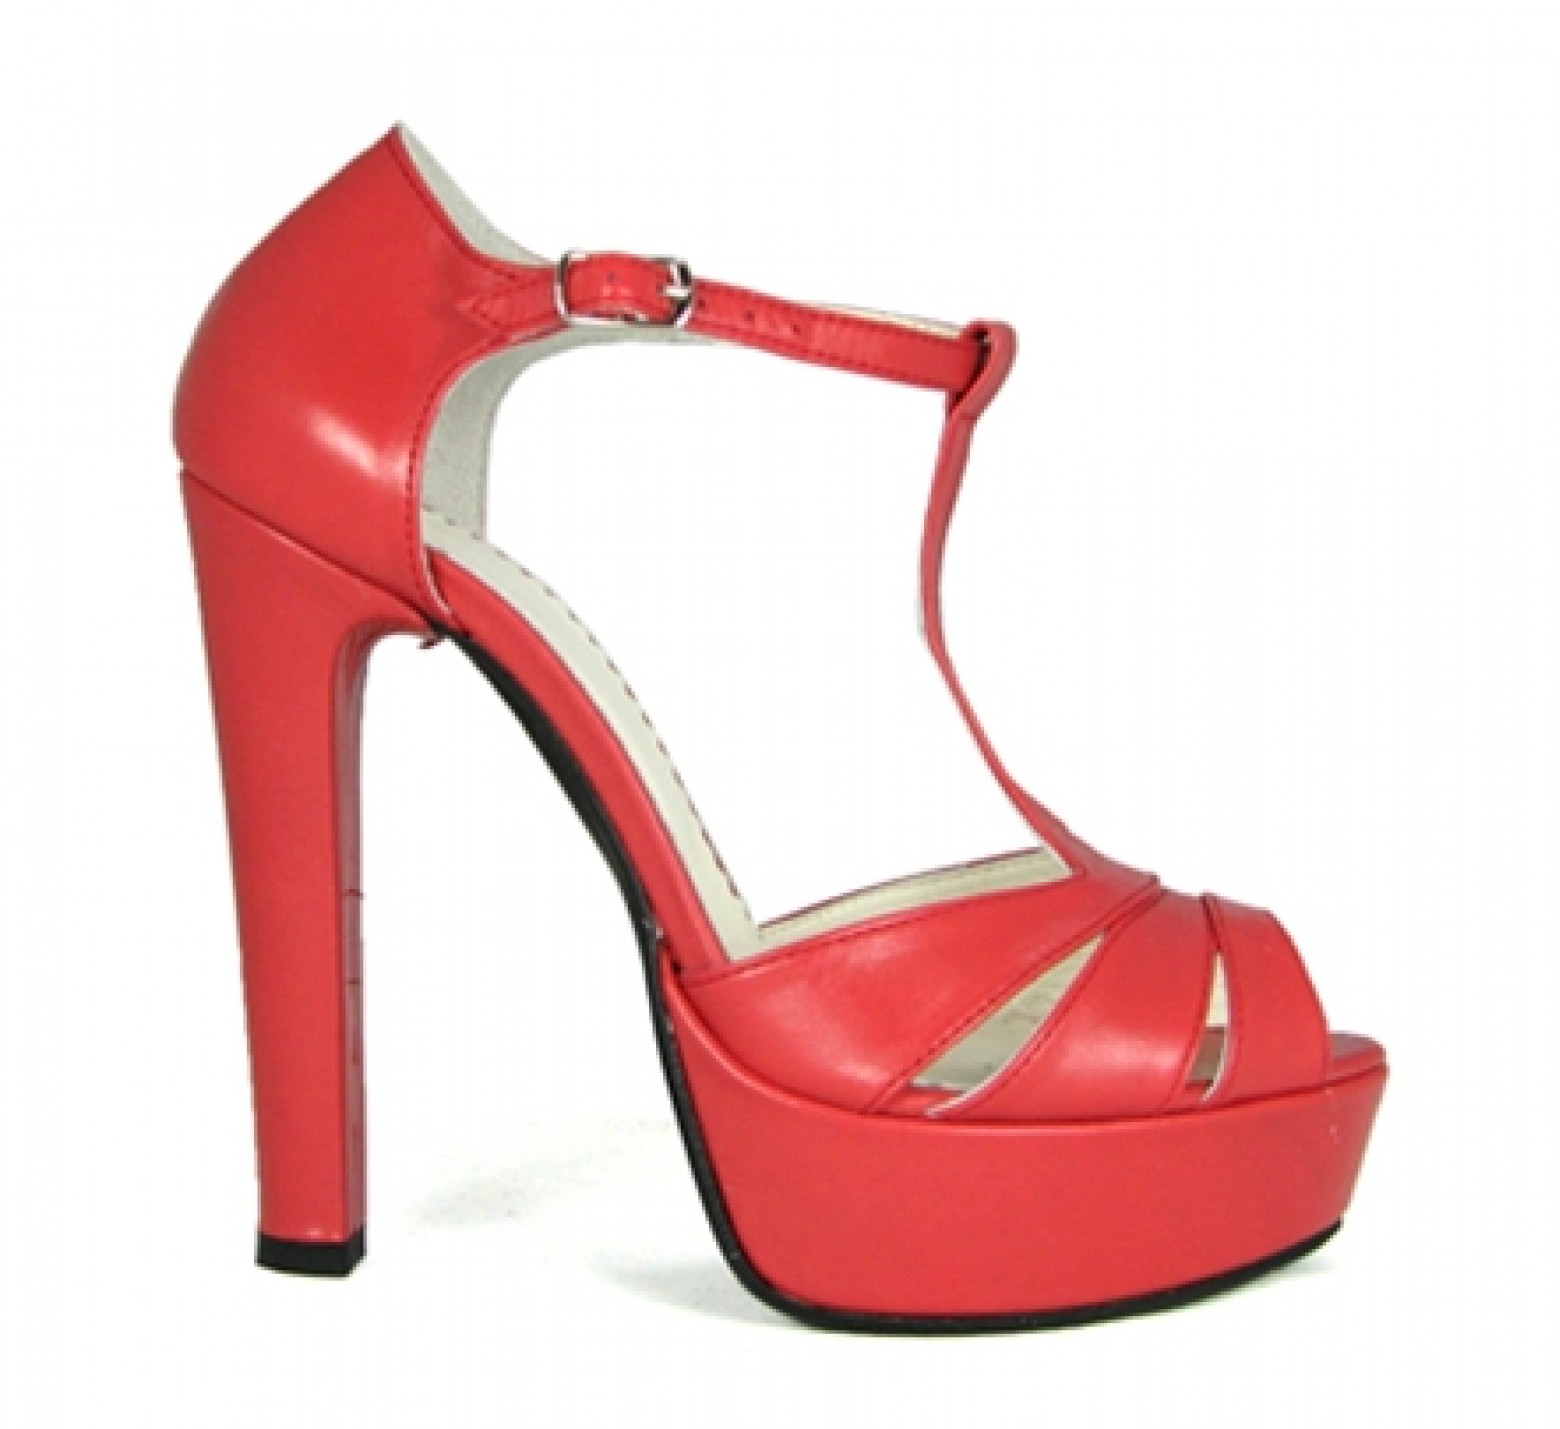 SANDALE HOT RED